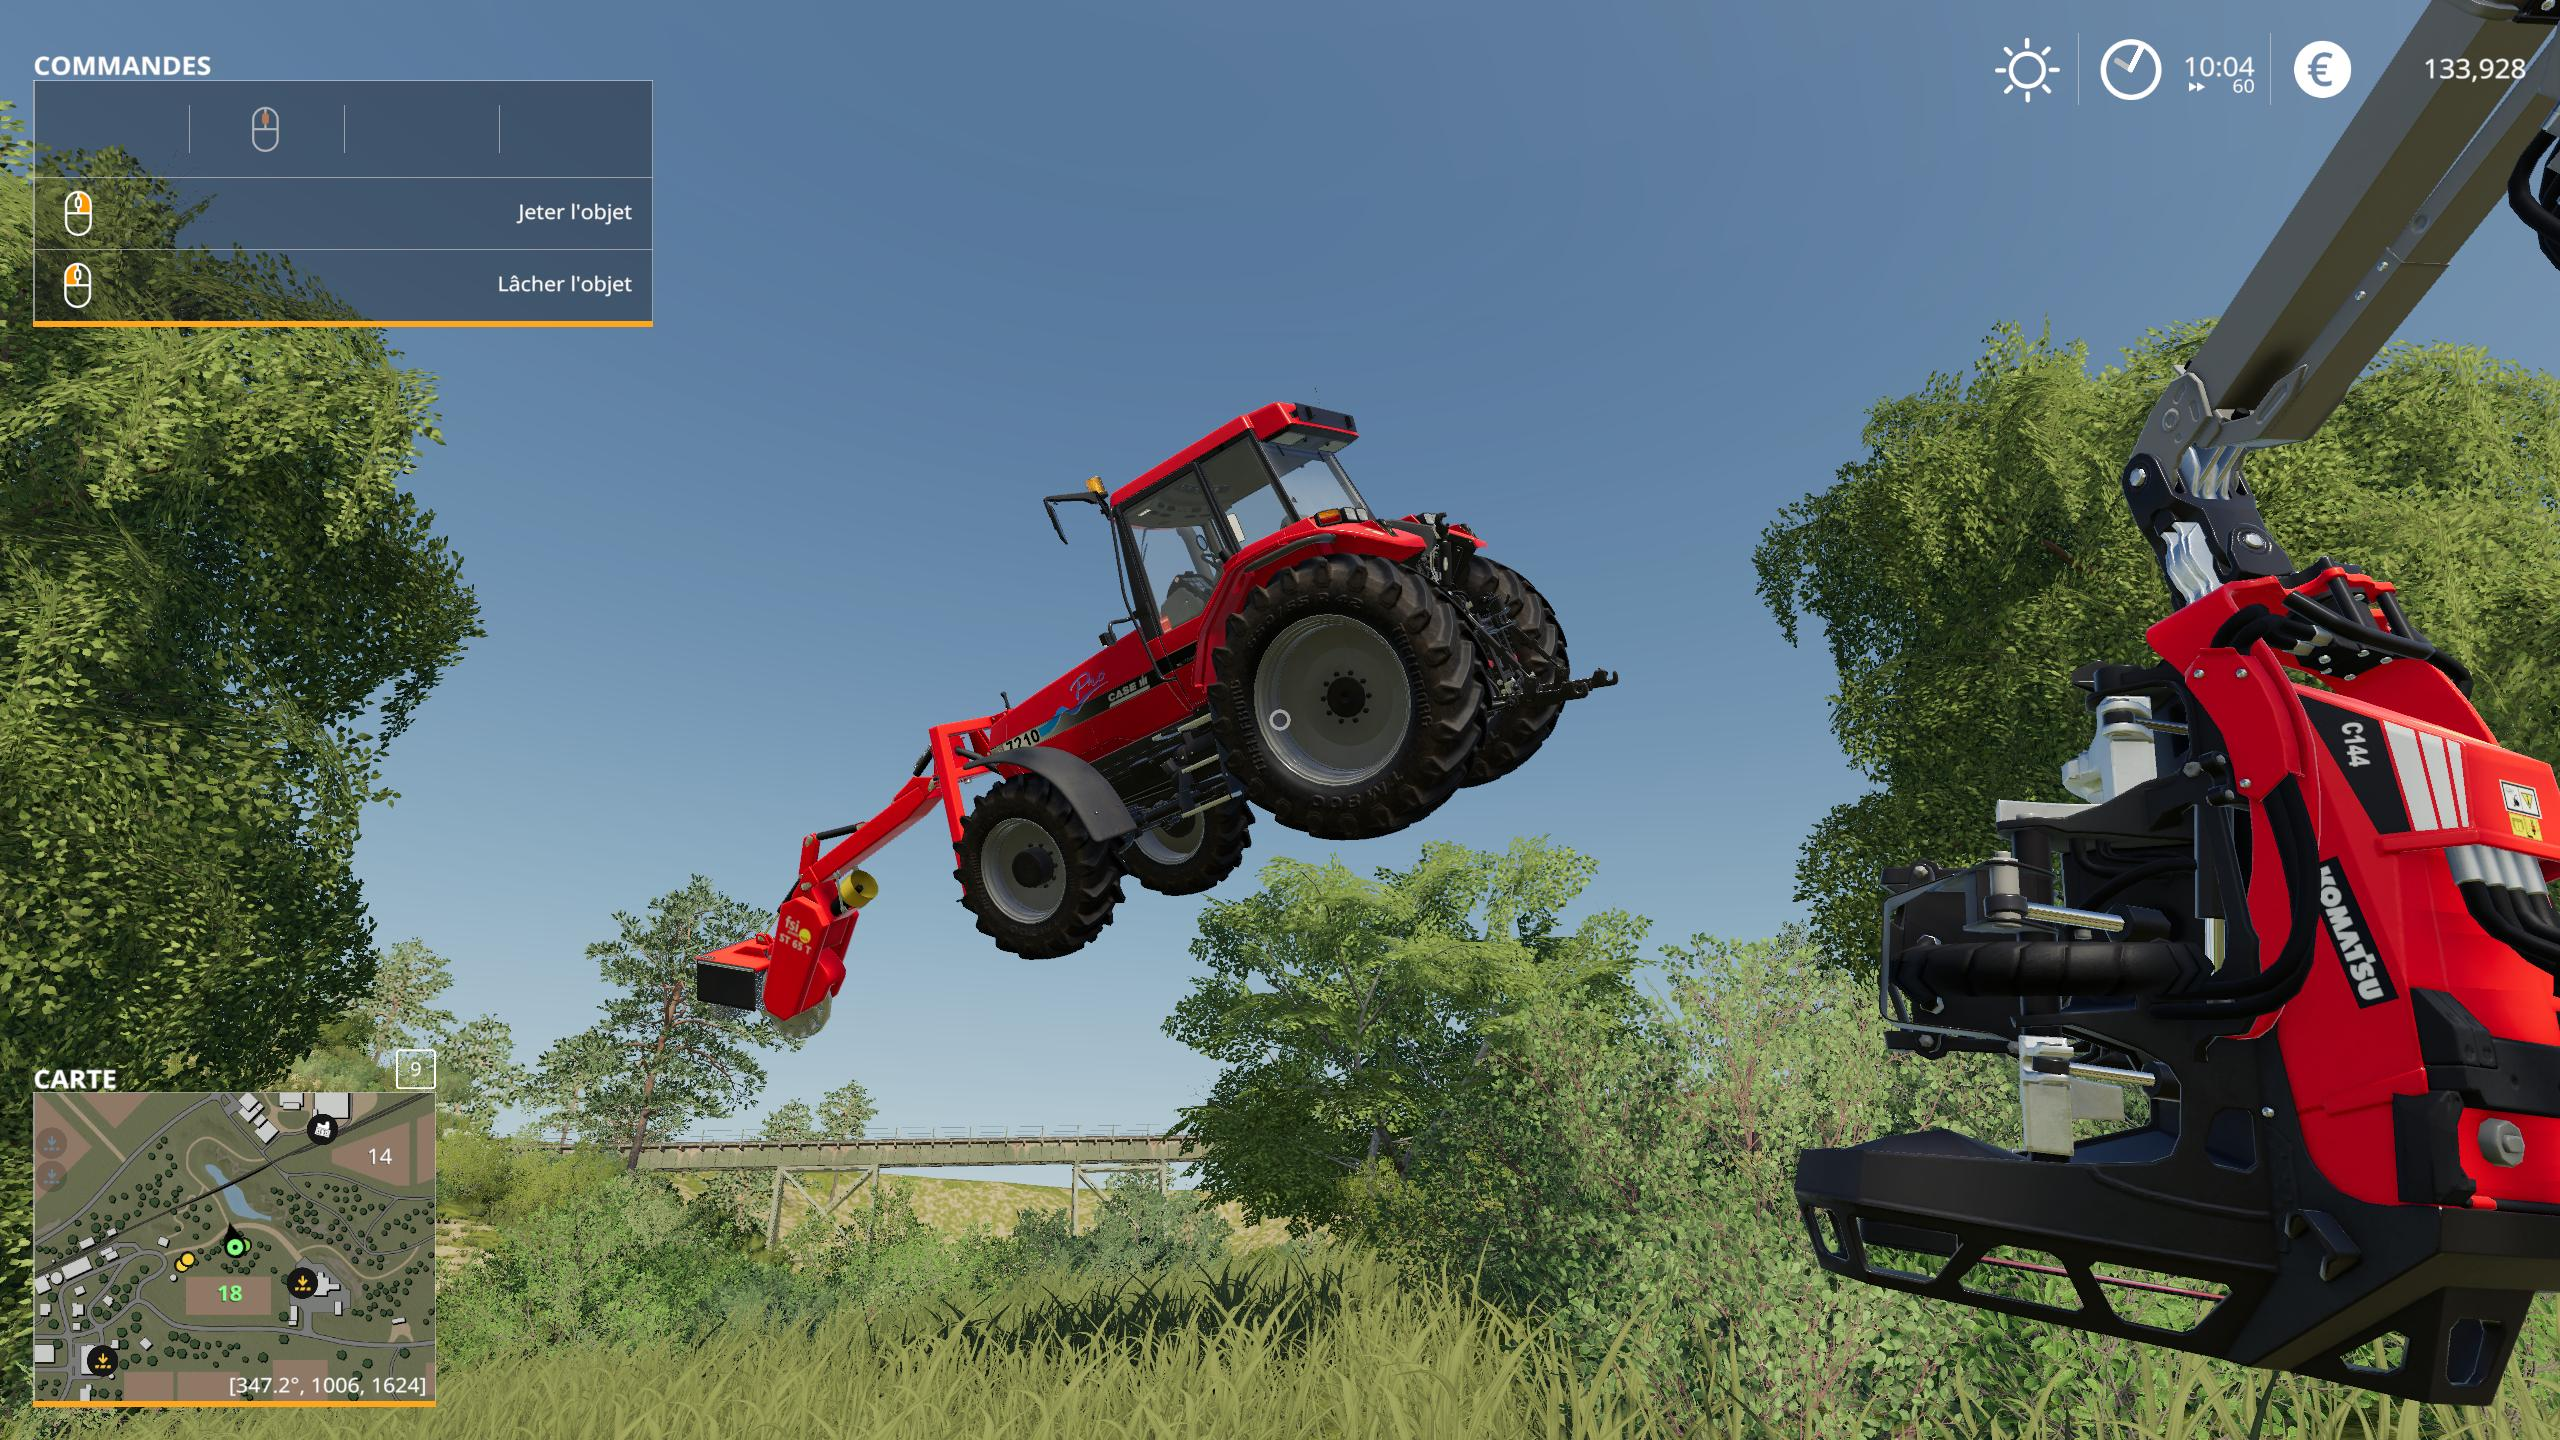 Fs 19 patch